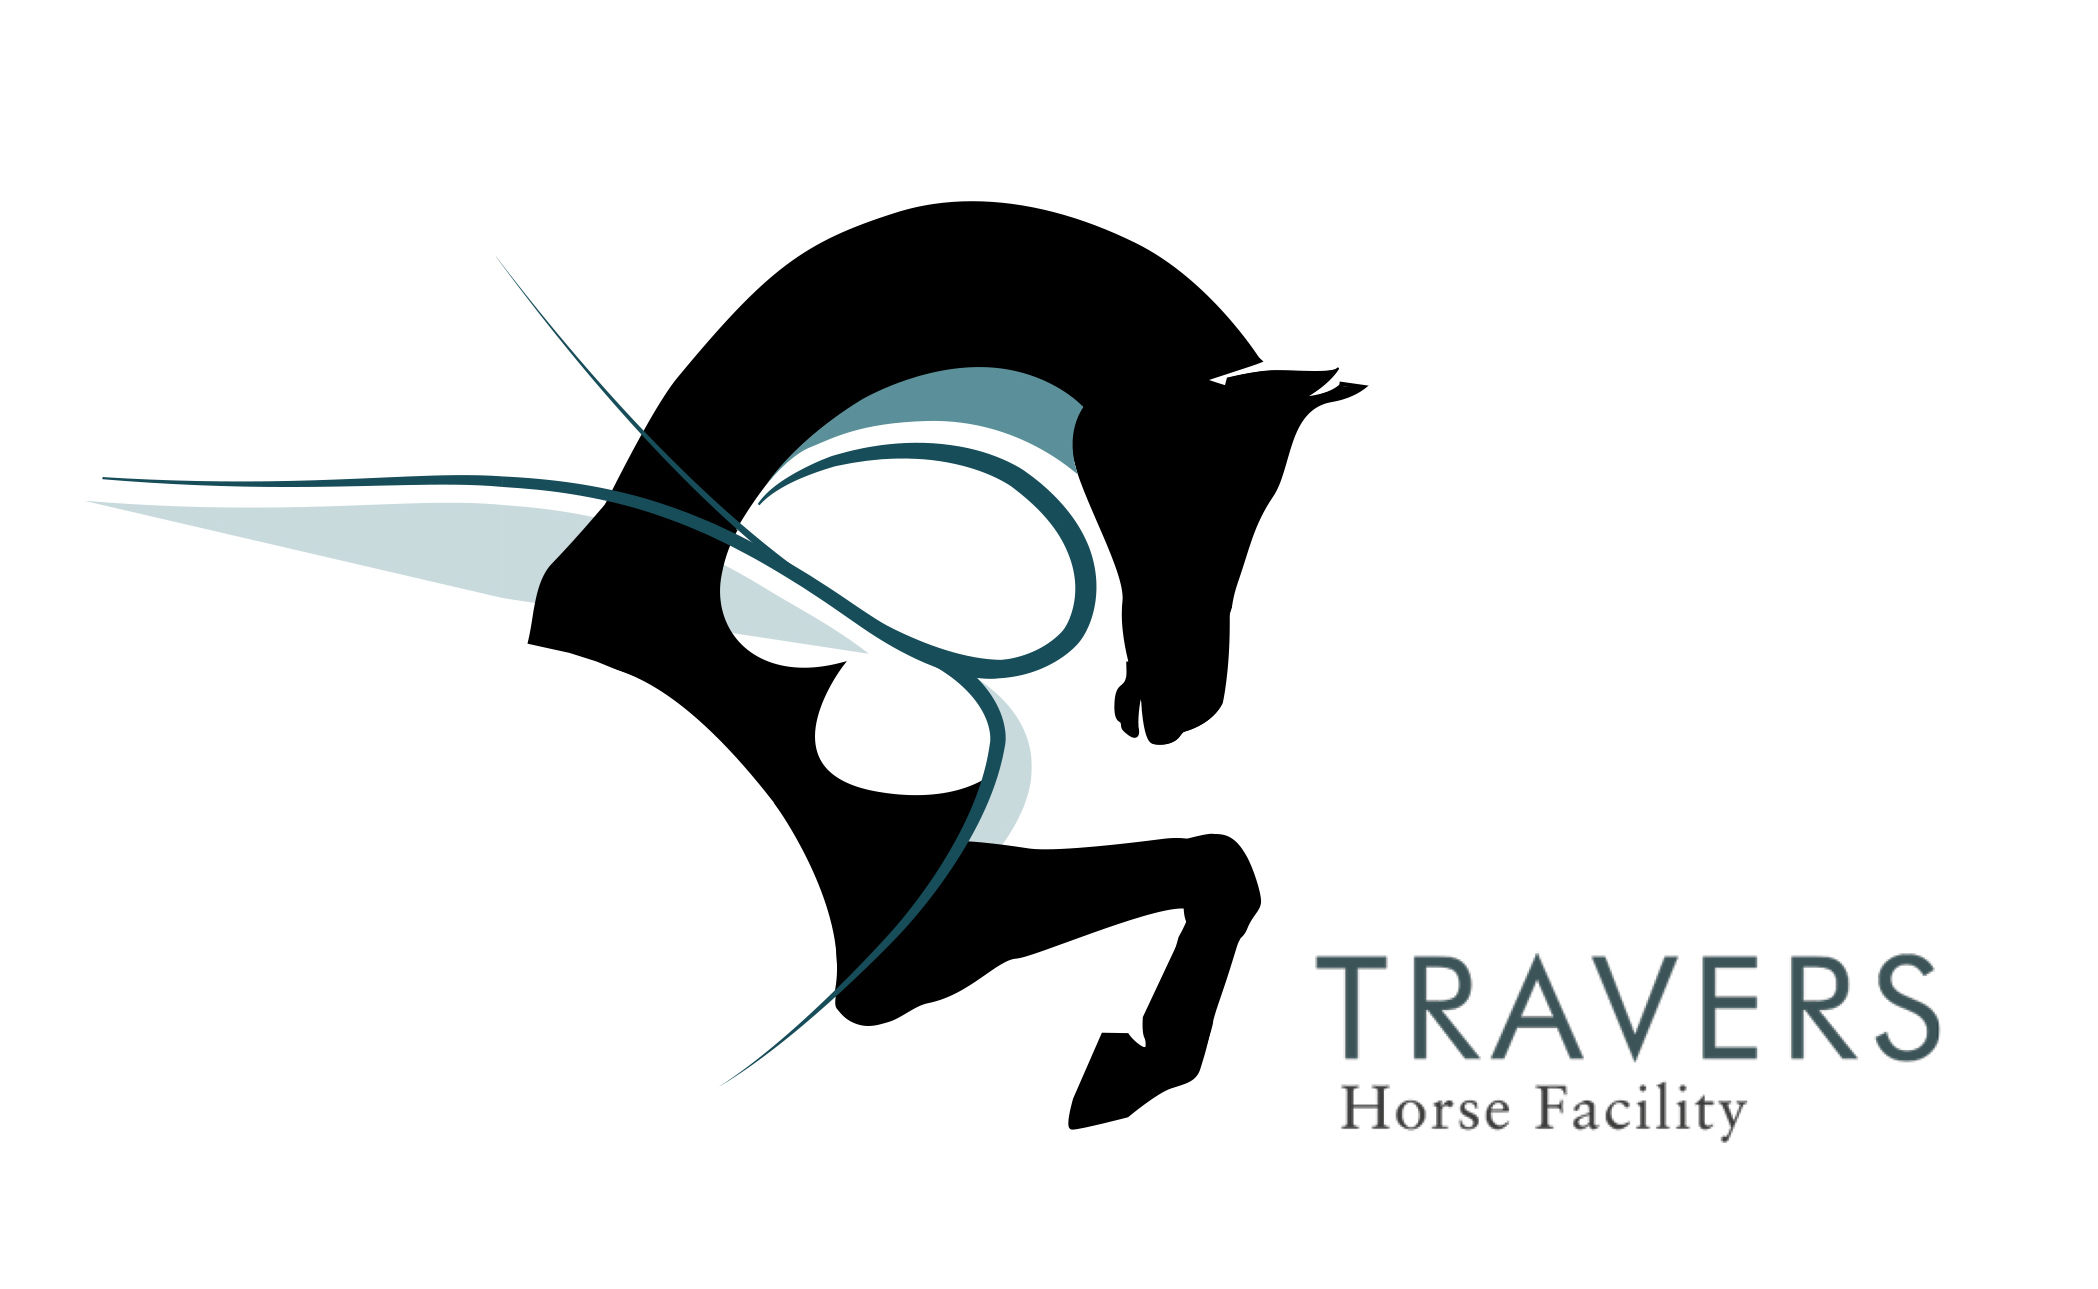 Travers Horse facility